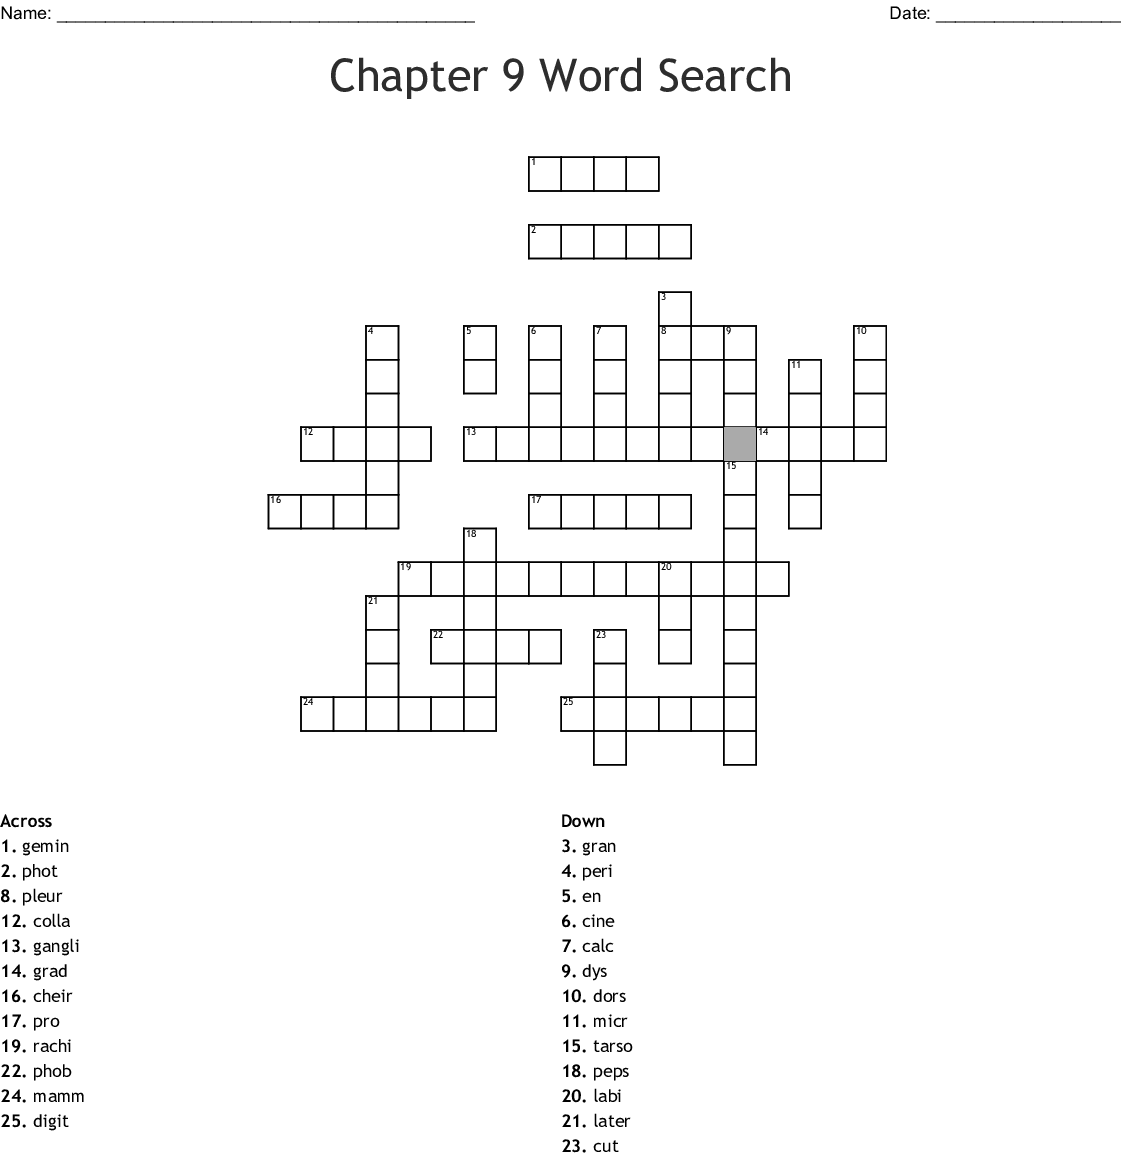 Chapter 9 Word Search Crossword